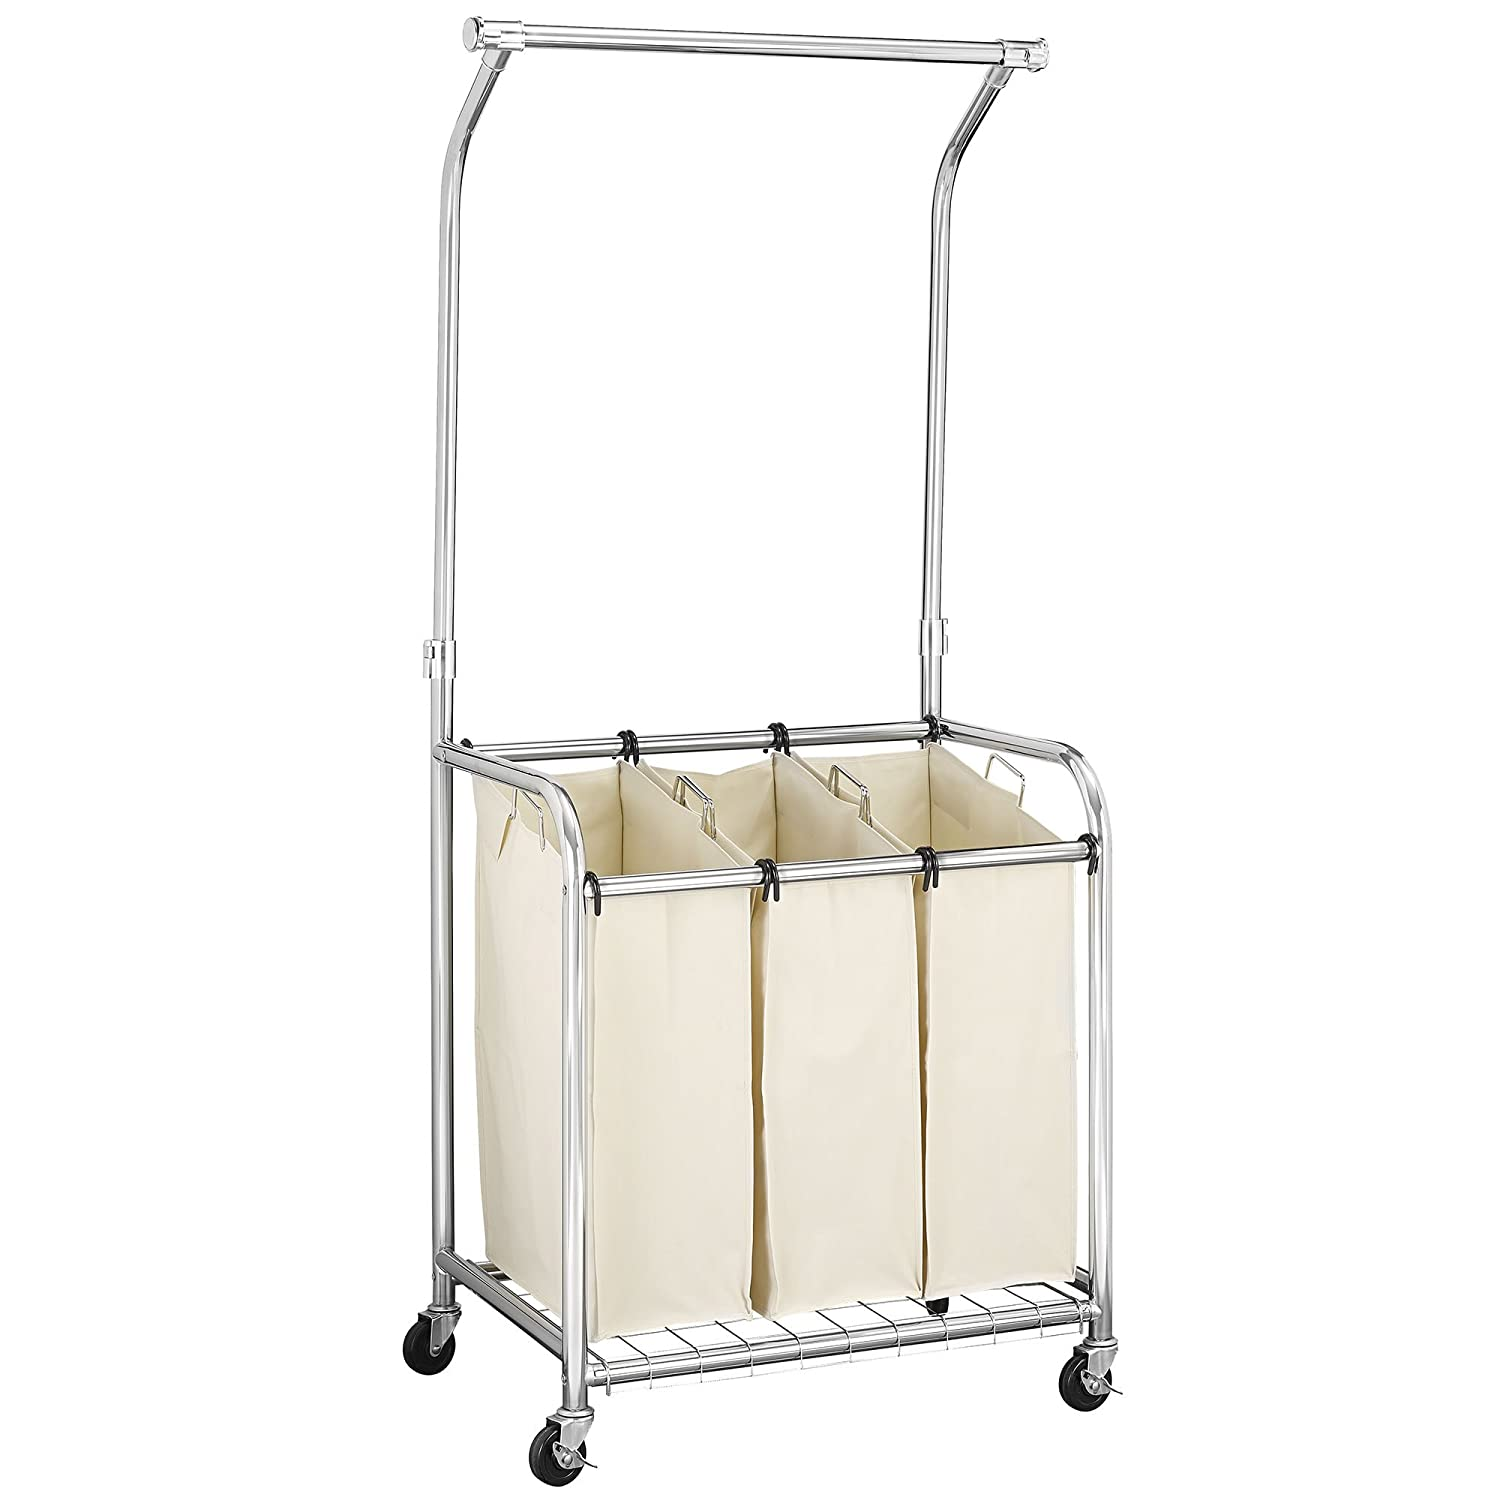 Household Essentials Commercial Laundry Center with Clothes Rack 6027-1